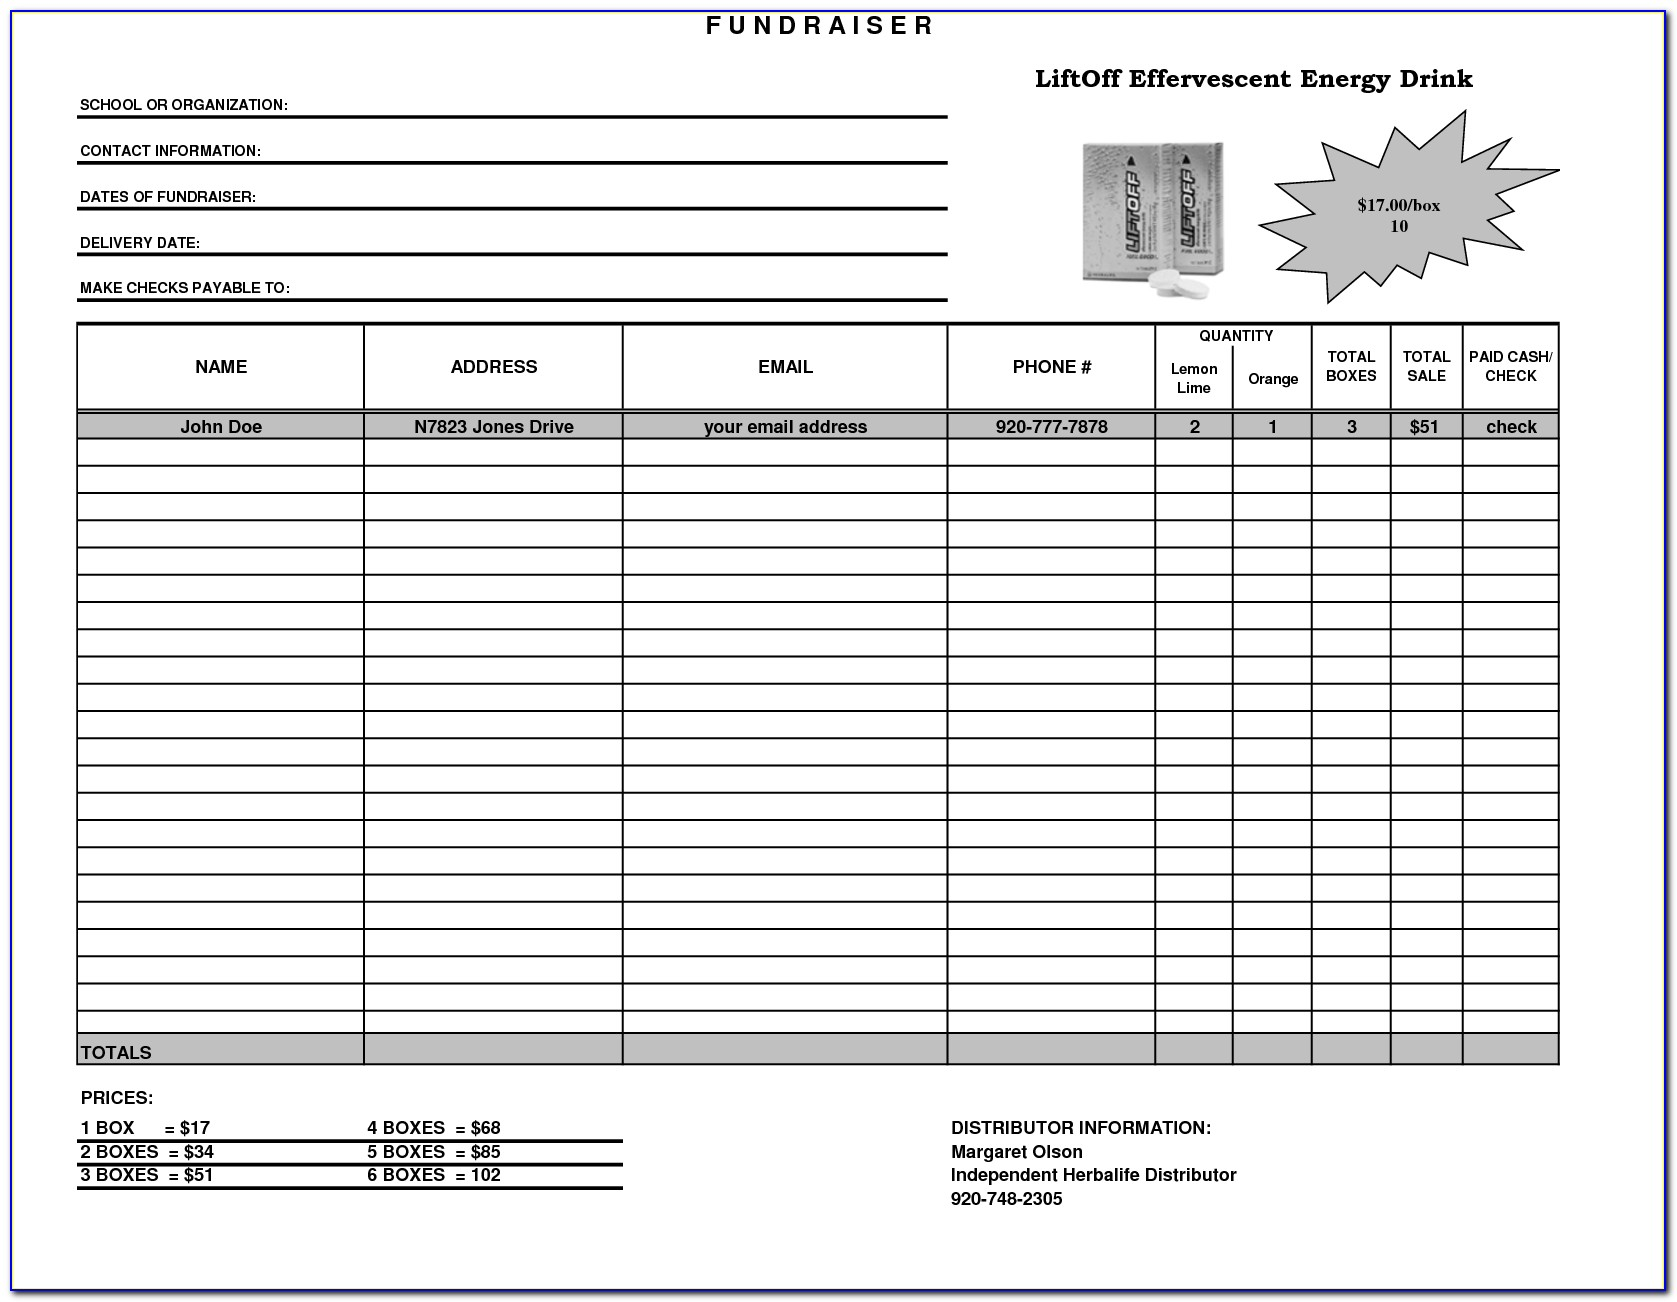 Fundraiser Order Form Template Excel Free